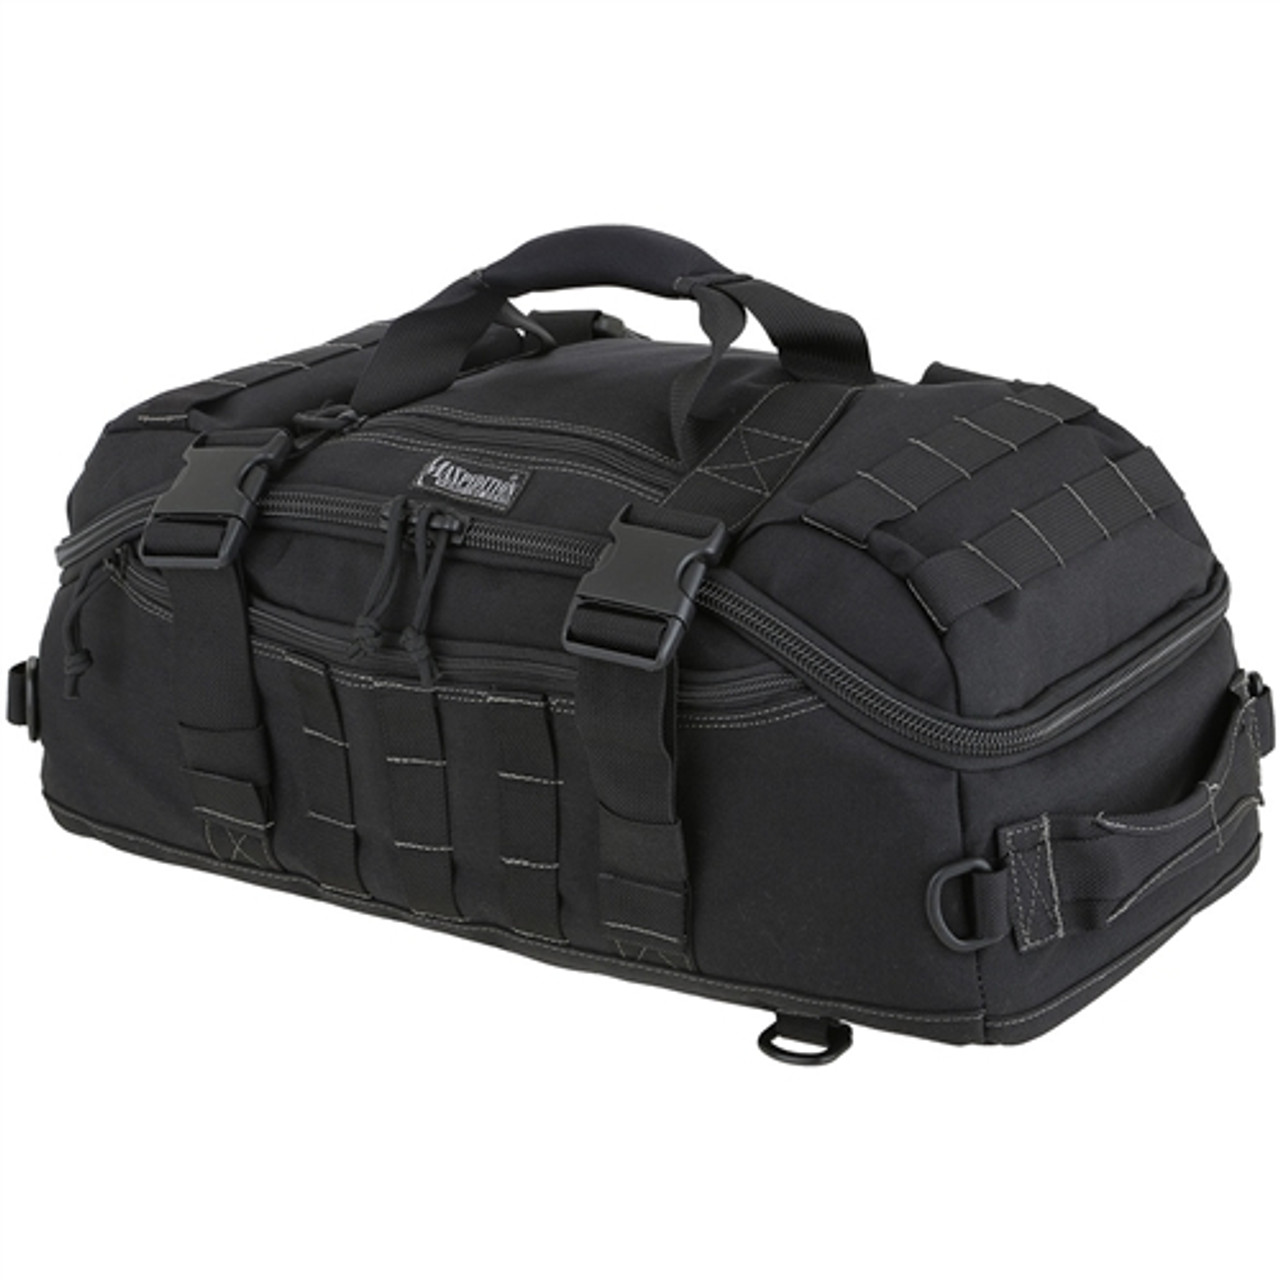 Maxpedition SOLODUFFEL Adventure Bag, Black